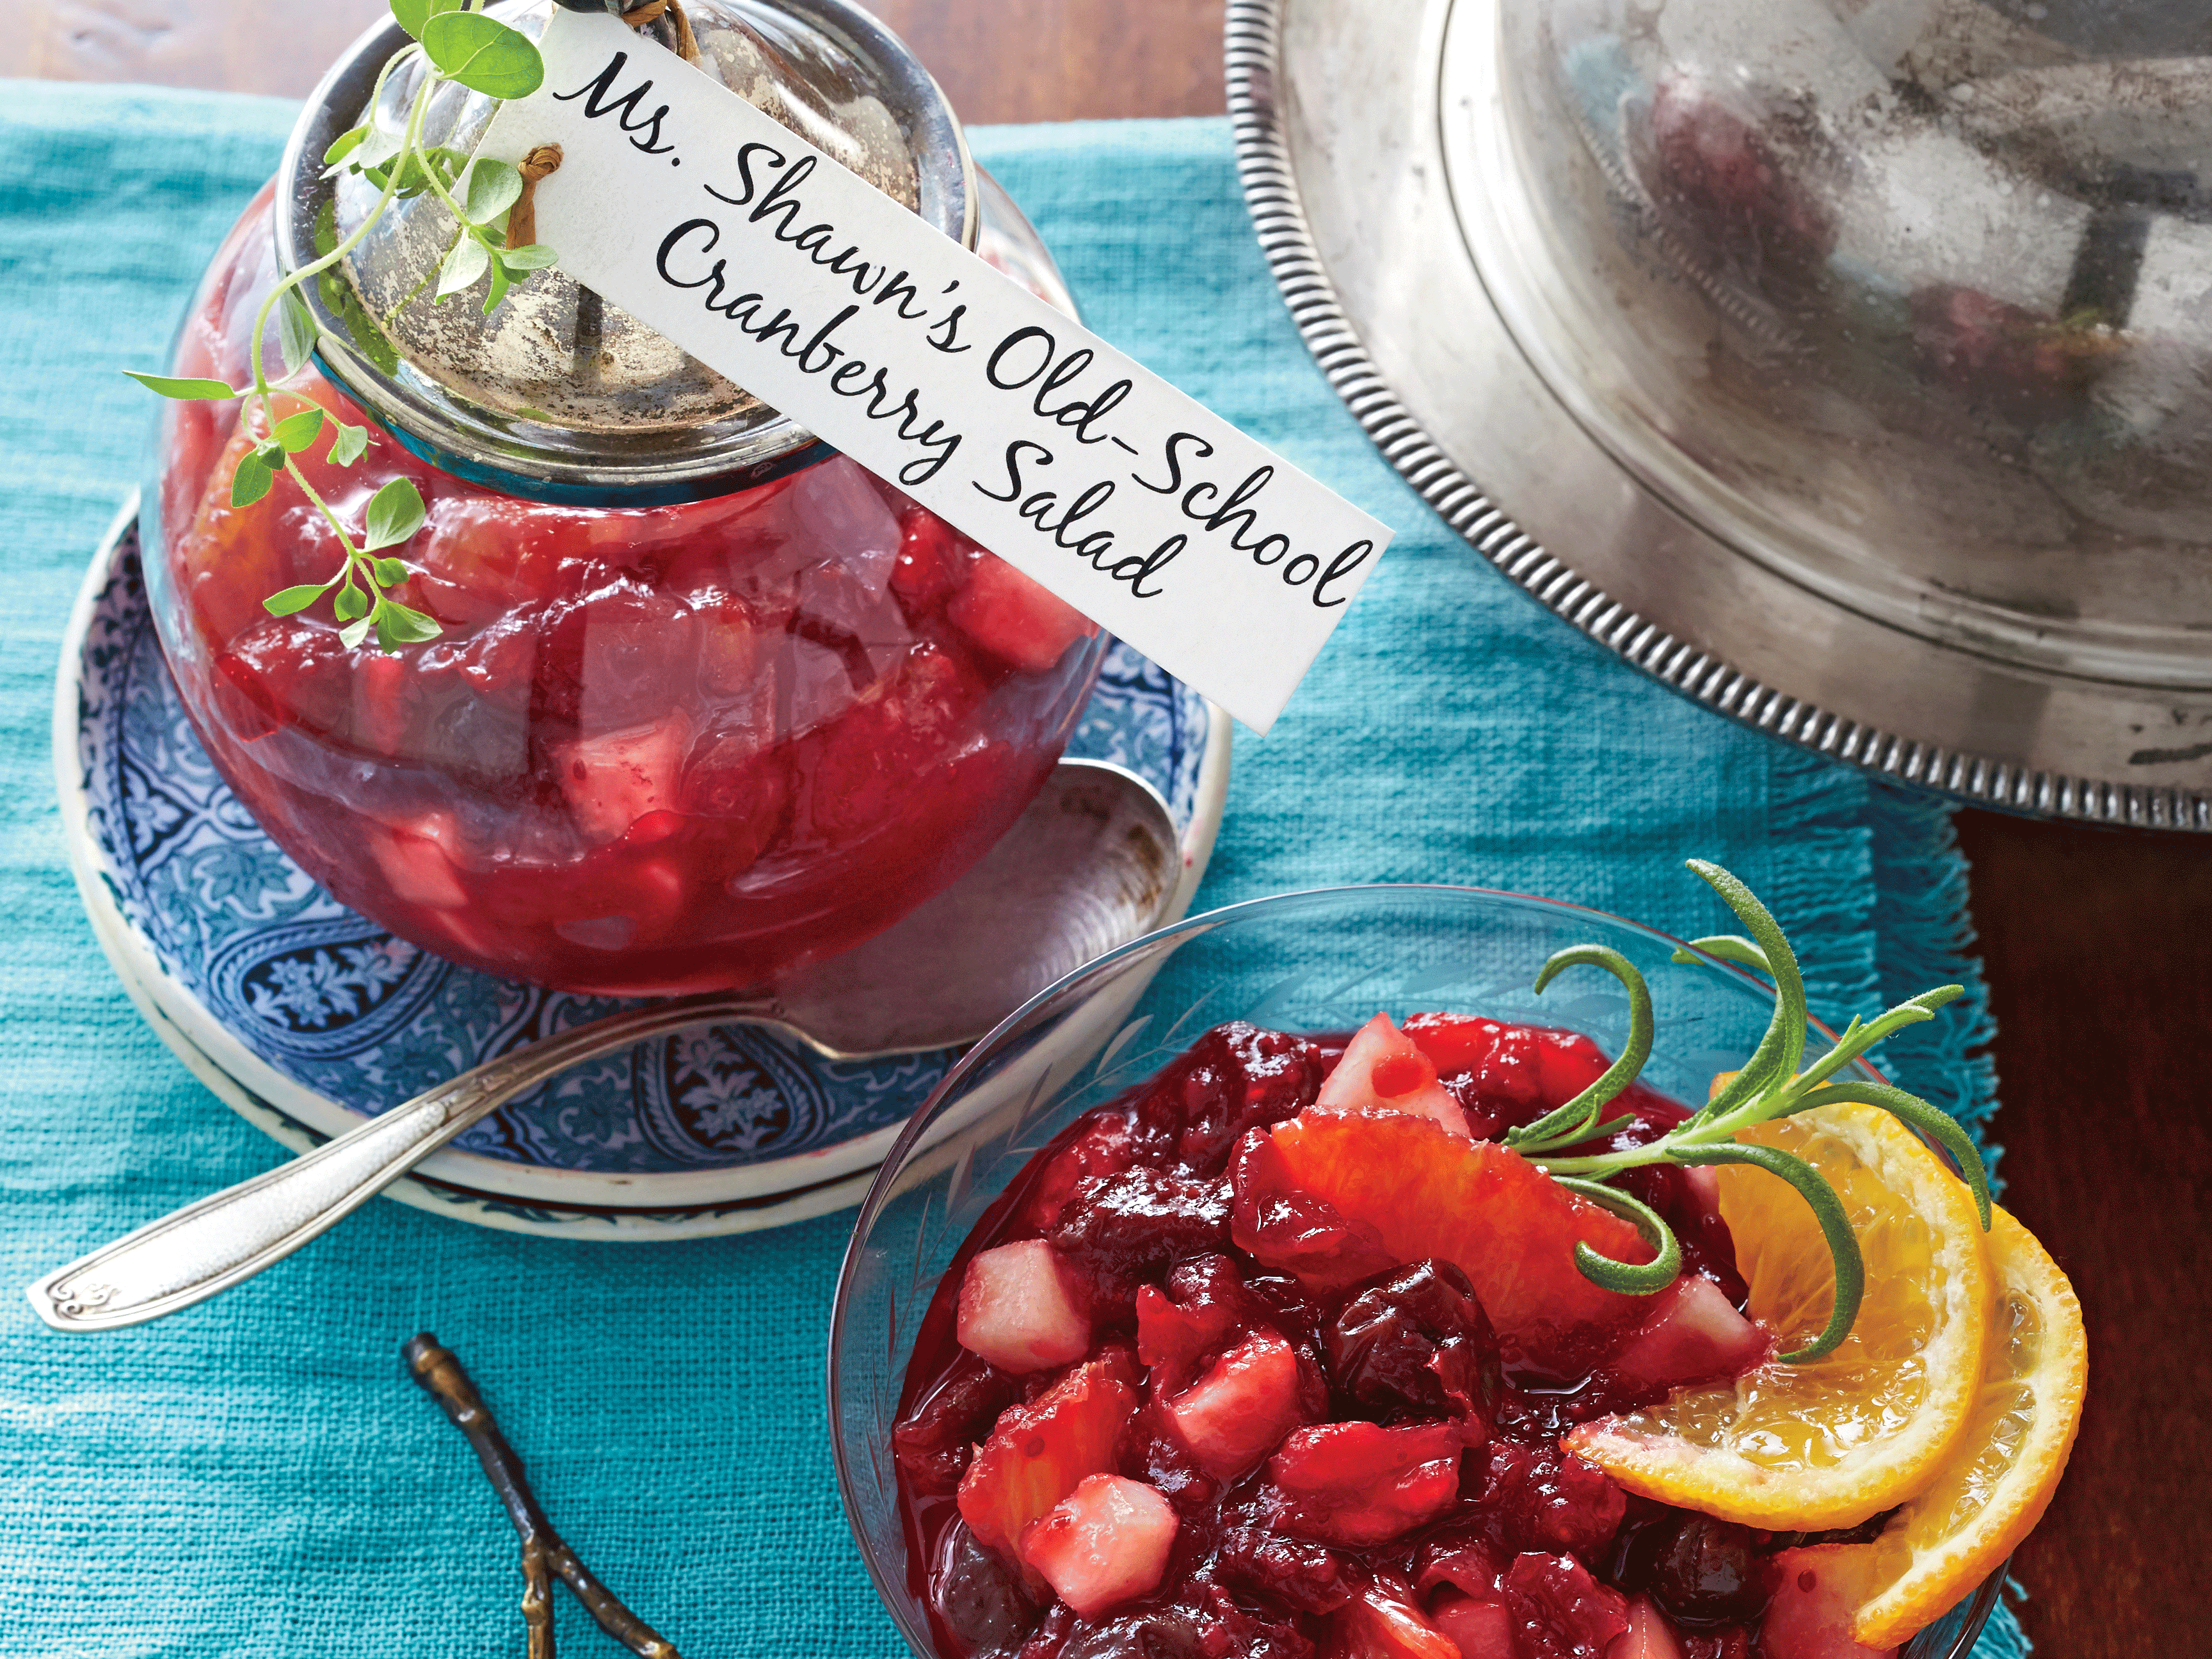 Old-School Cranberry salad recipe (enlarged)